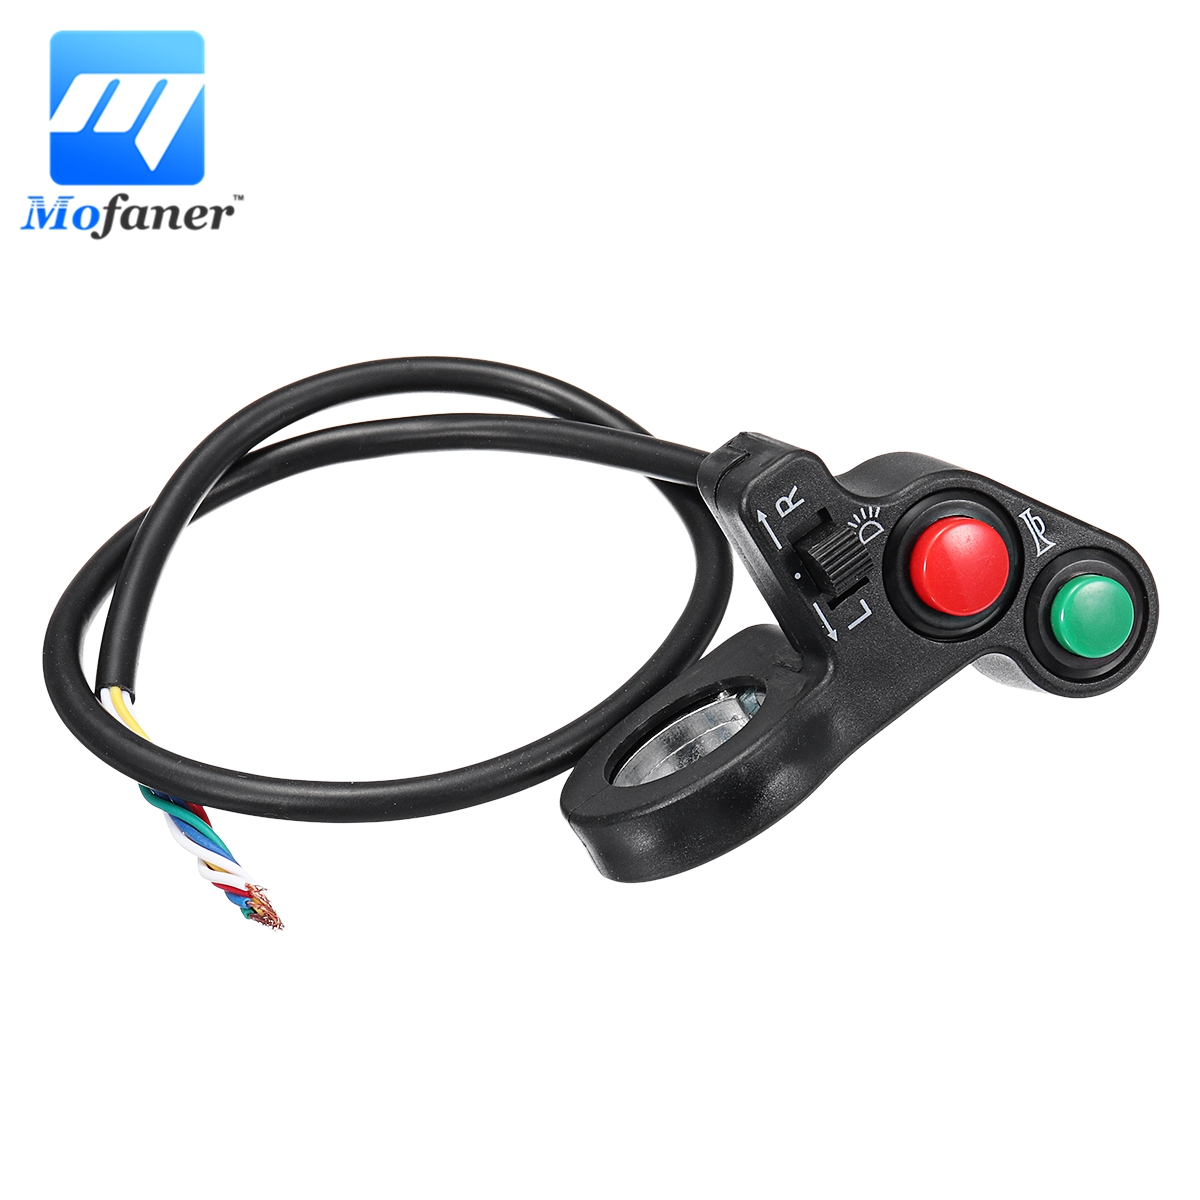 Nicecnc 22mm Electrical Thumb Twist Grip Bar Throttle Battery Indicator Button Switch Kit For E-motorcycle E-bike E-scooter Electric Vehicle Parts